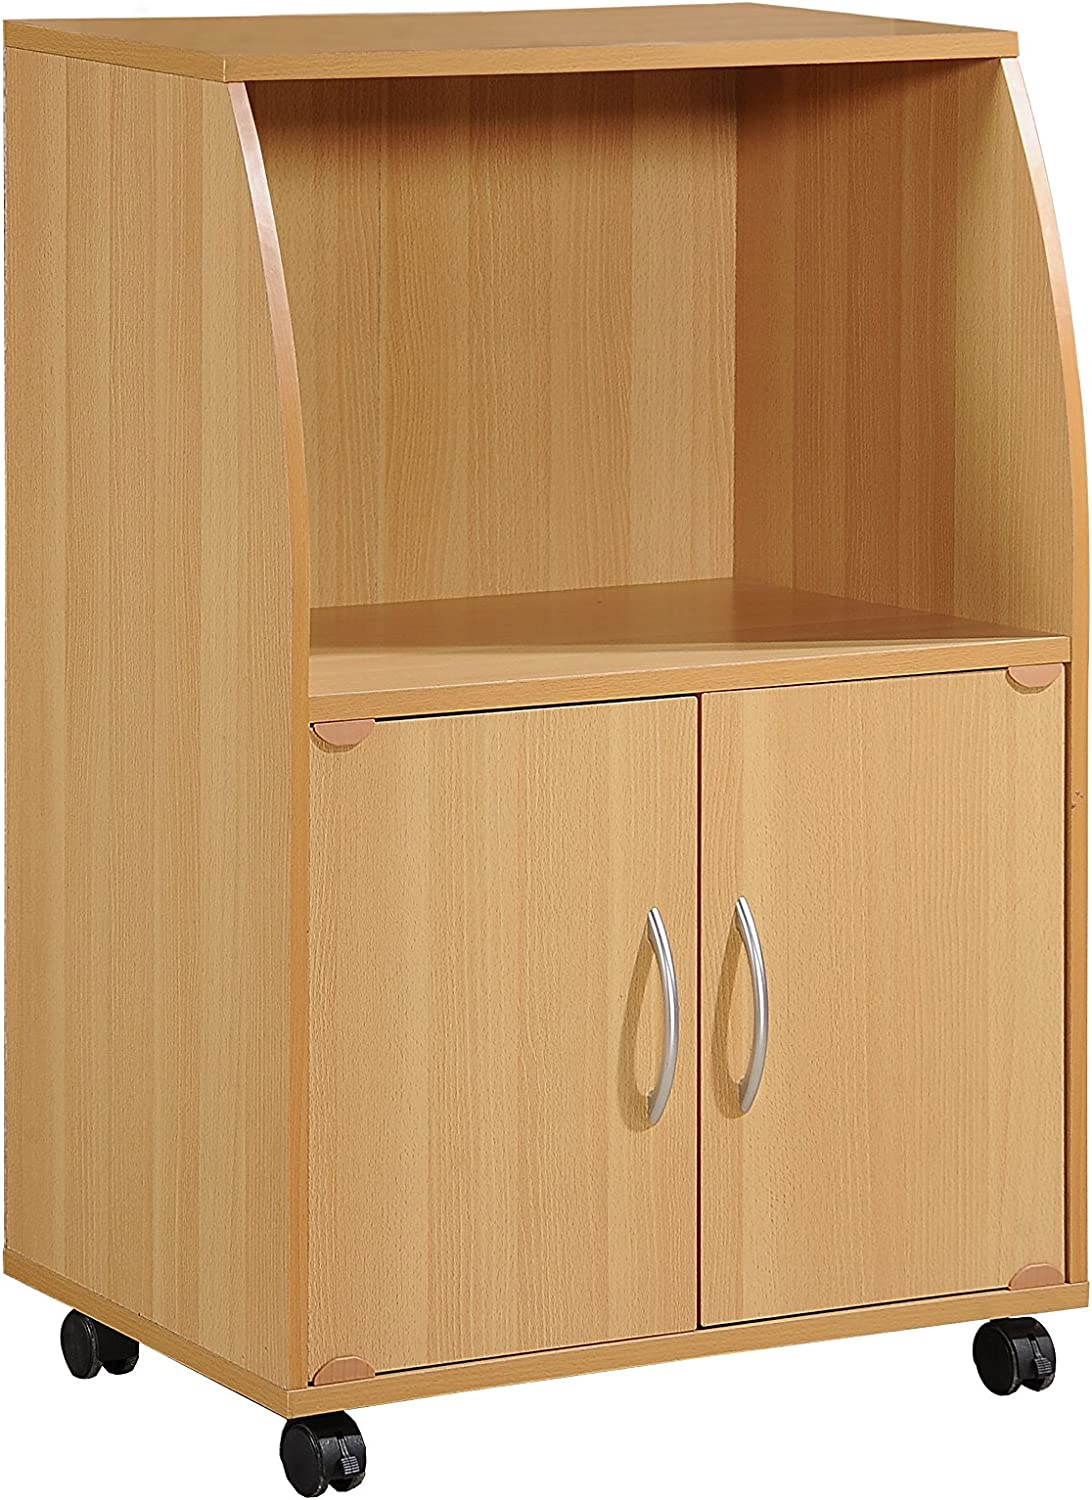 Hodedah Mini Microwave Cart with Two Doors and Shelf for Storage, Beech